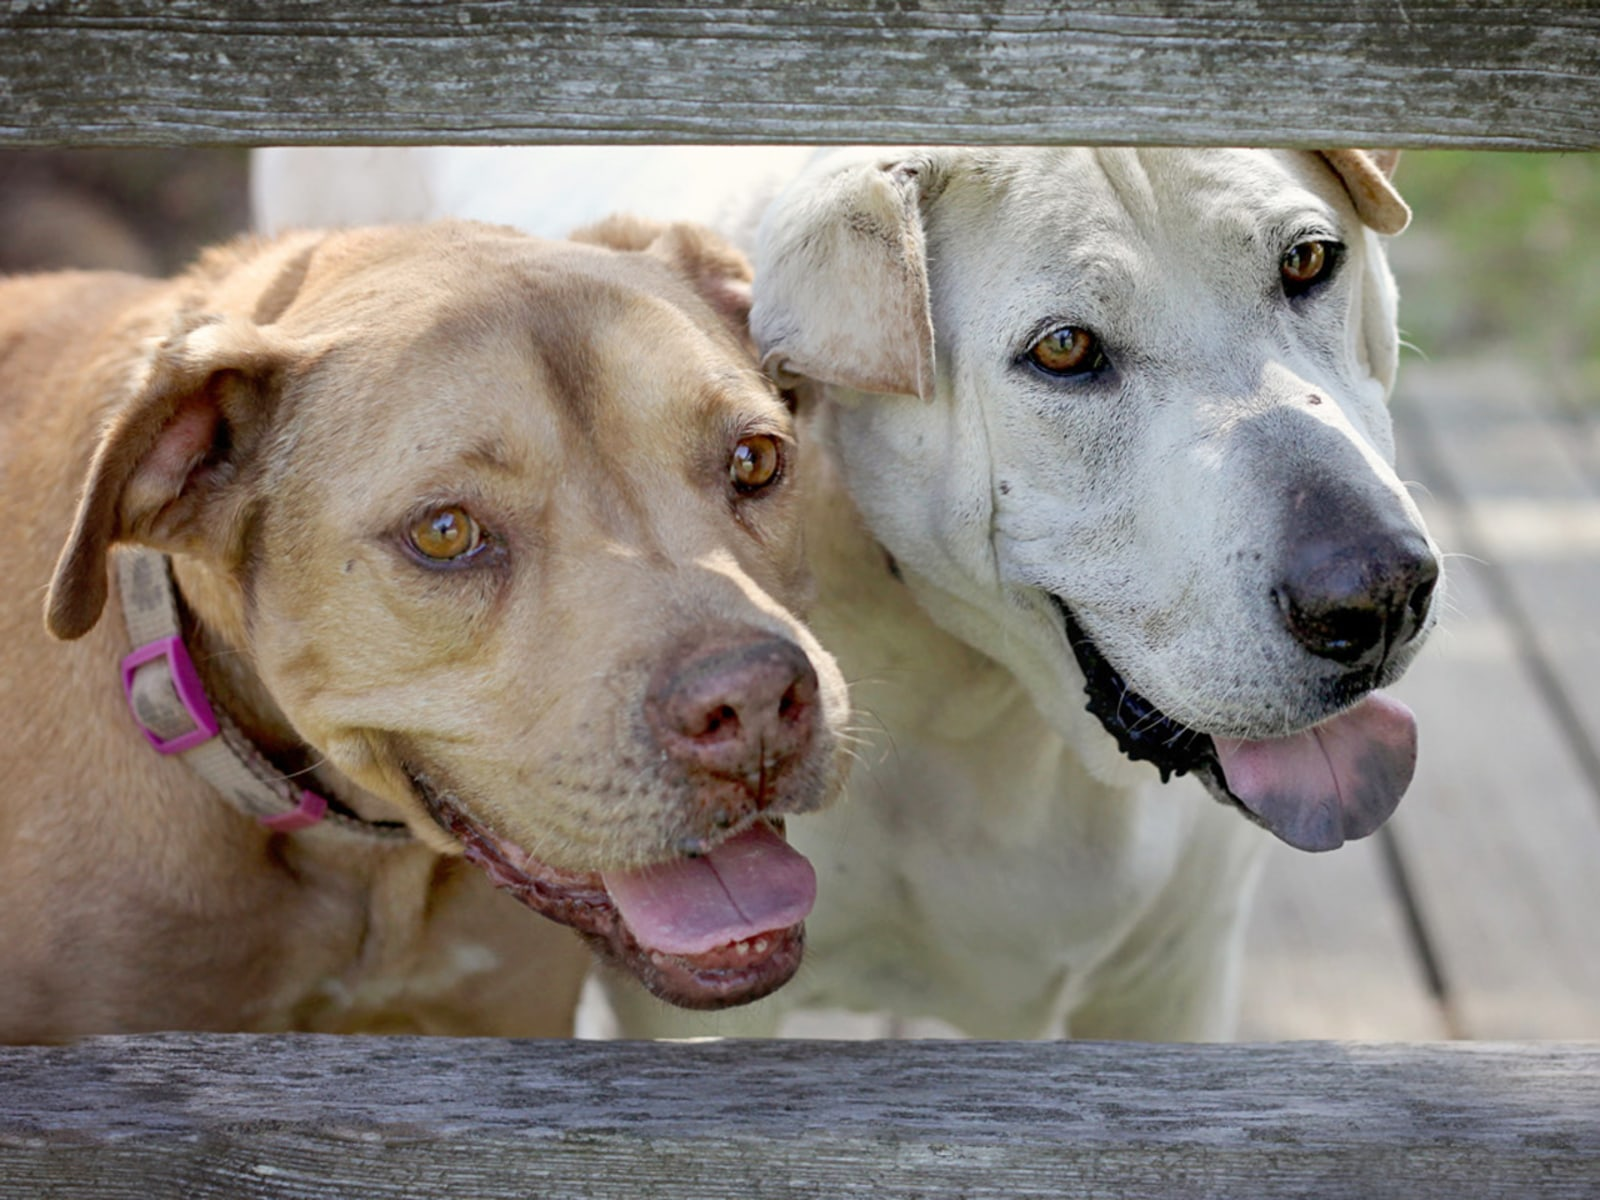 Dogs News -- ScienceDaily